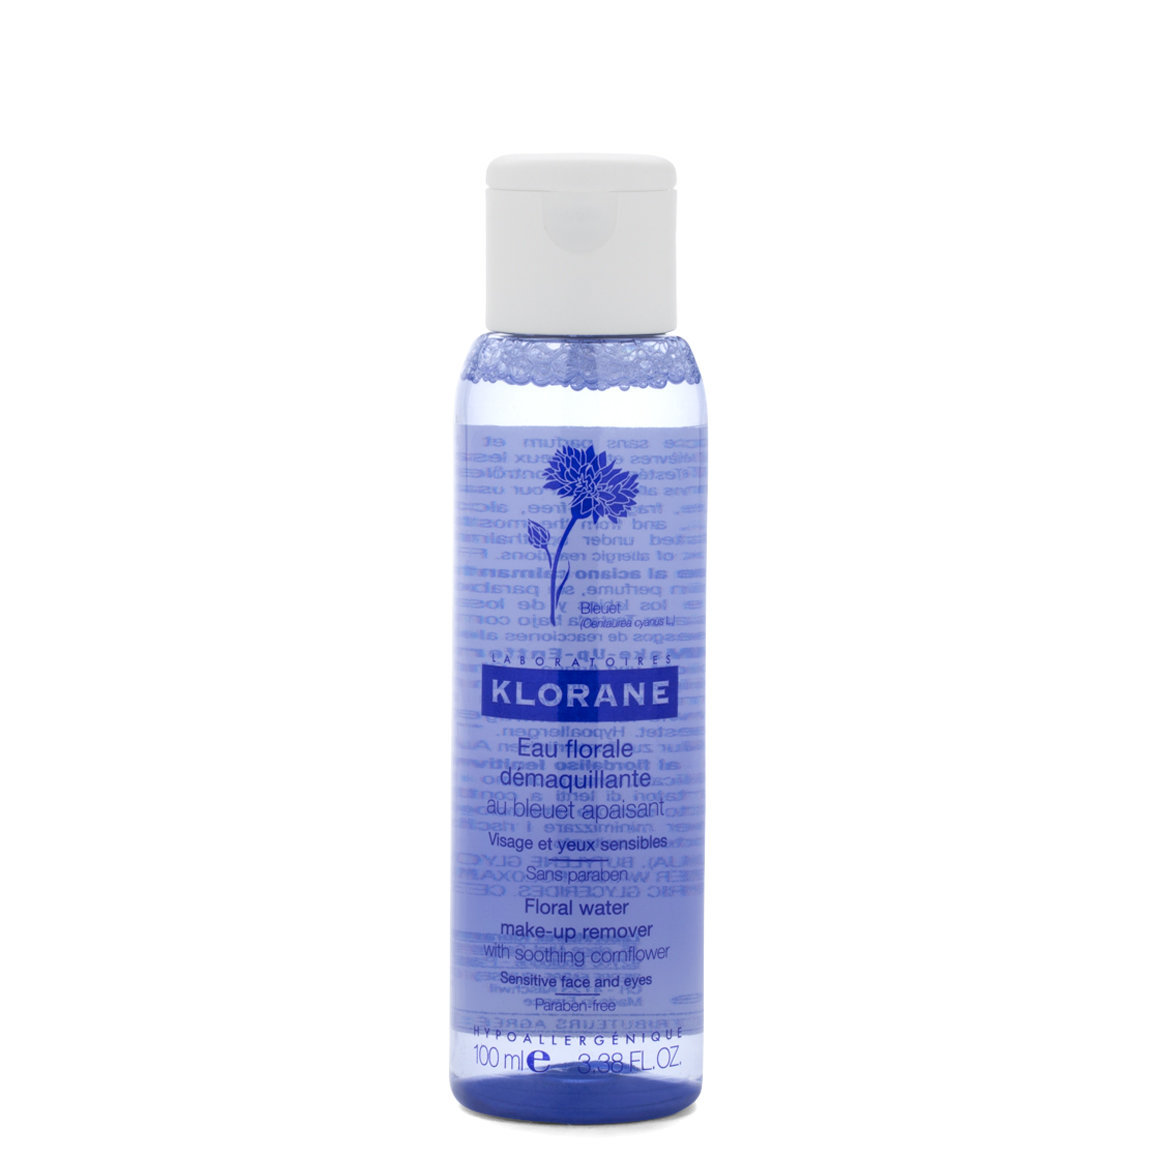 Klorane Floral Water Make-Up Remover with Soothing Cornflower 3.4 oz alternative view 1 - product swatch.